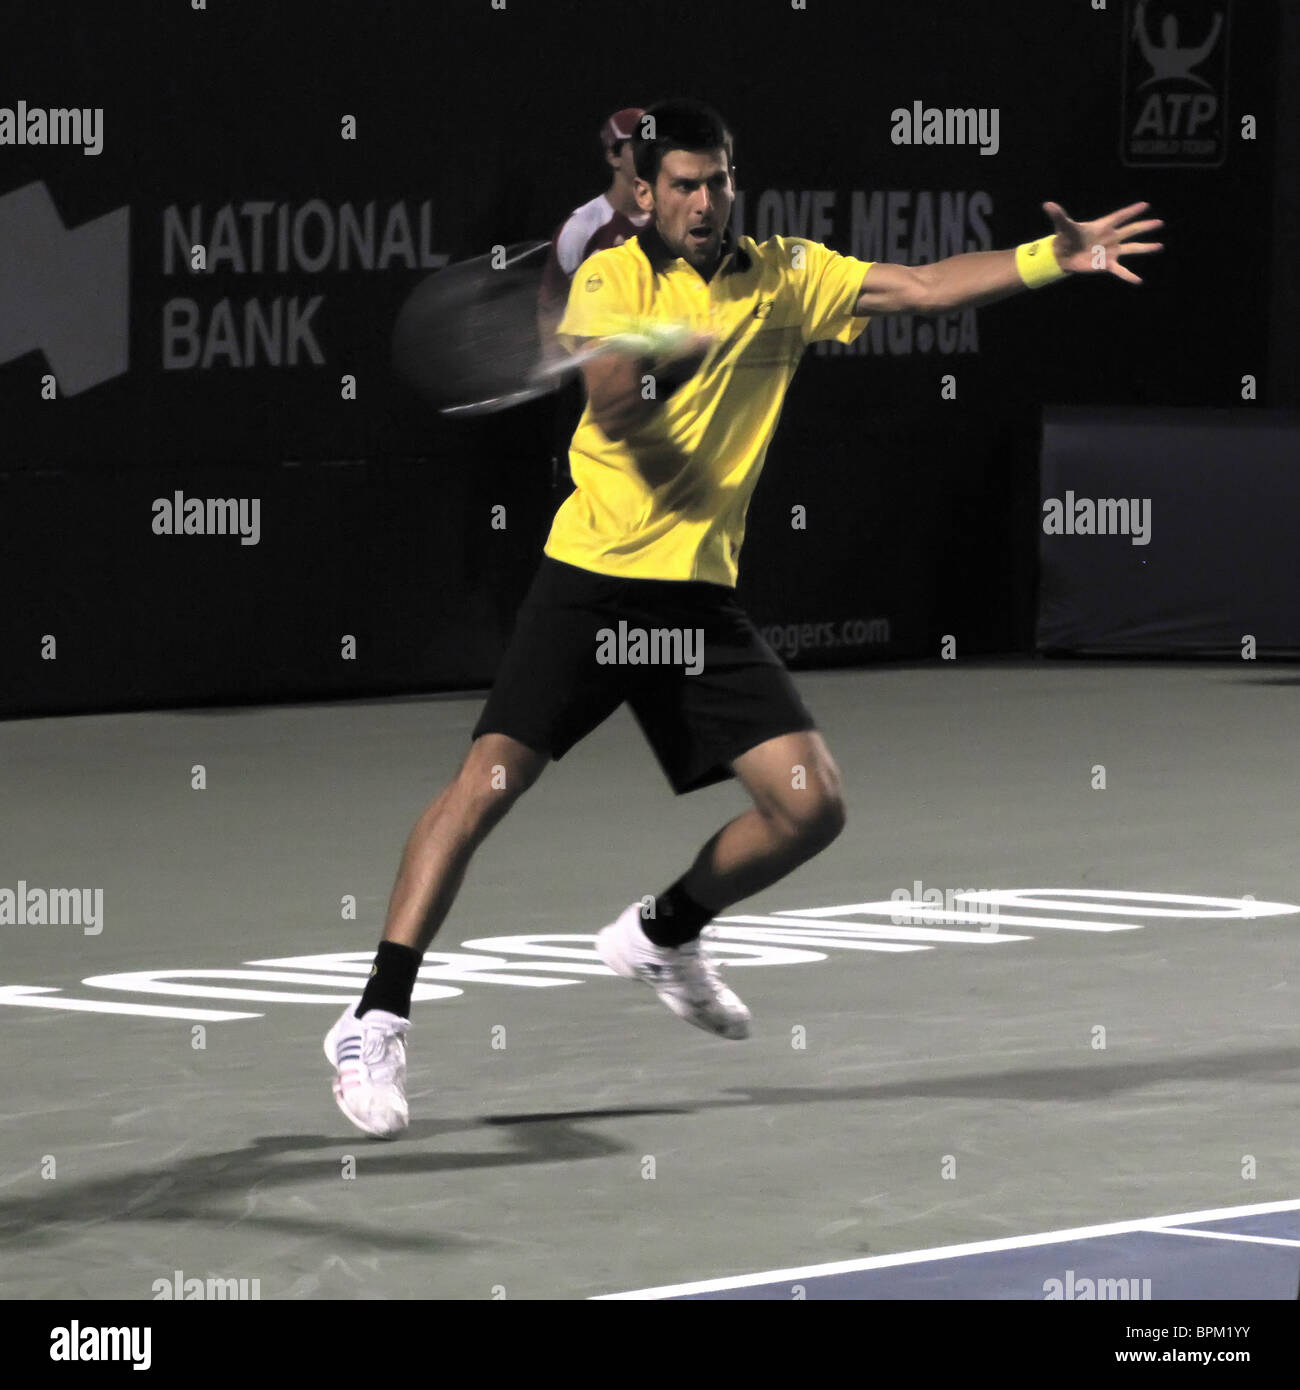 NOVAK DJOKOVIC World # One (SERBIA) COMPETING AGAINST CHARDY (QF) ROGERS CUP, TENNIS MASTERS EVENT,  US OPEN SERIES - Stock Image